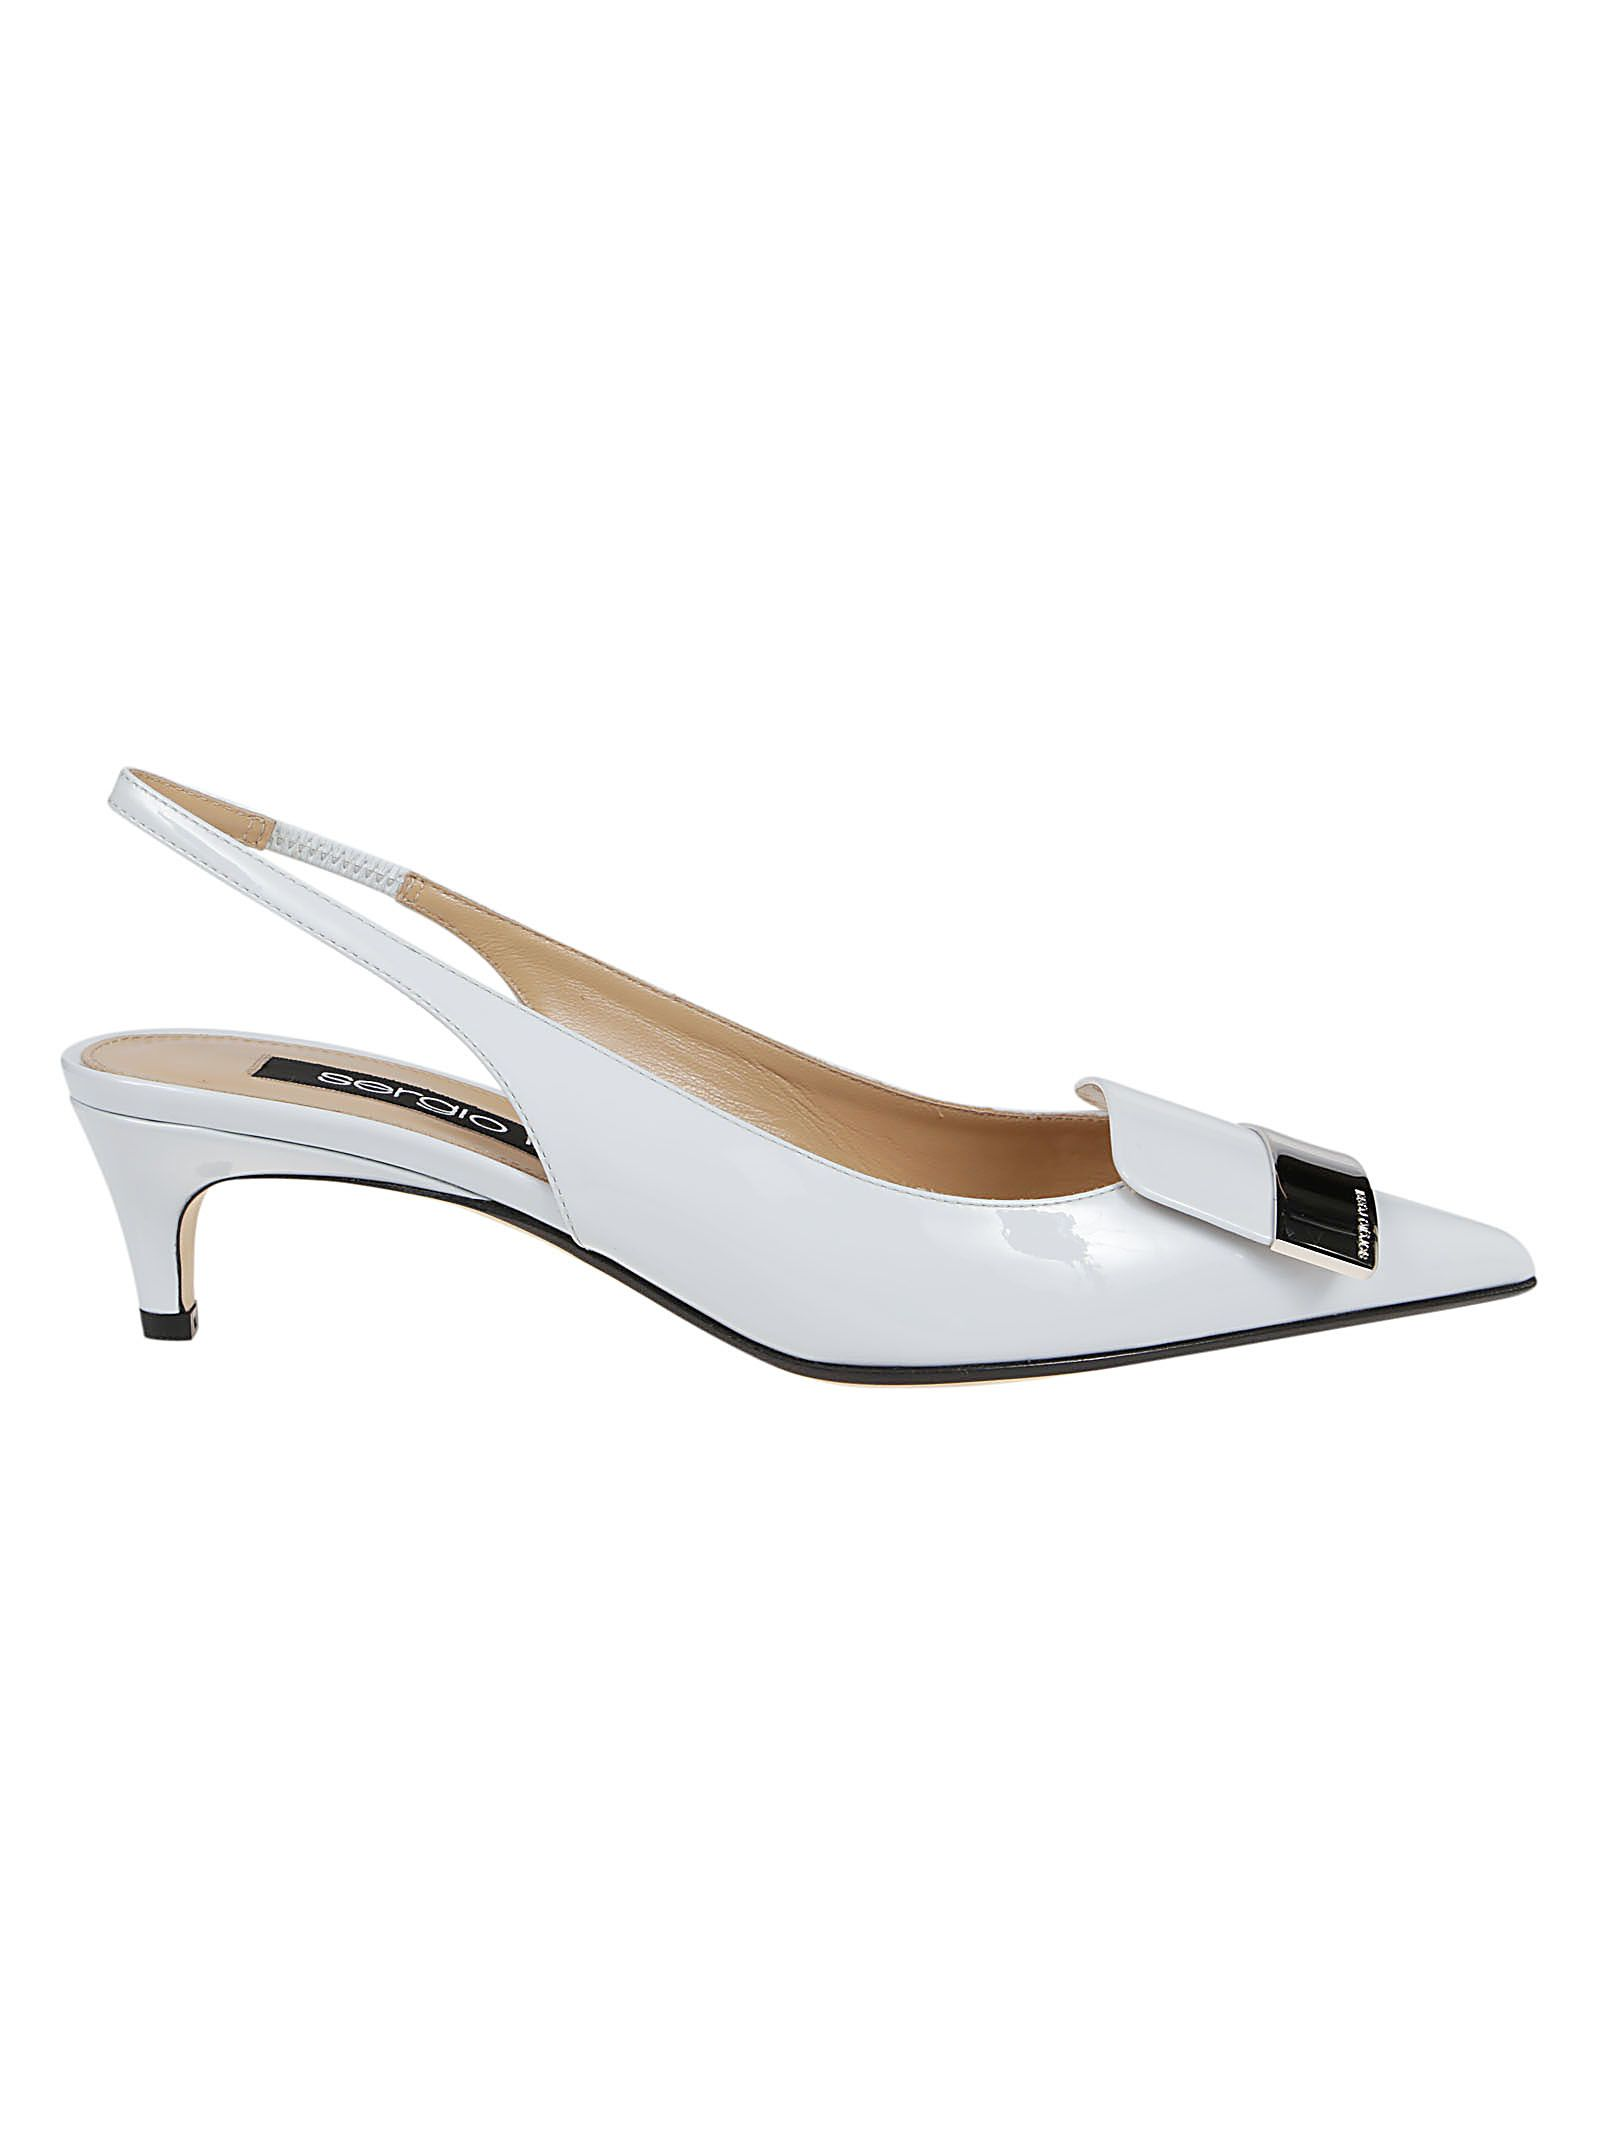 Sergio Rossi Low heels SERGIO ROSSI WOMEN'S A83930MVIV014813 WHITE OTHER MATERIALS SANDALS